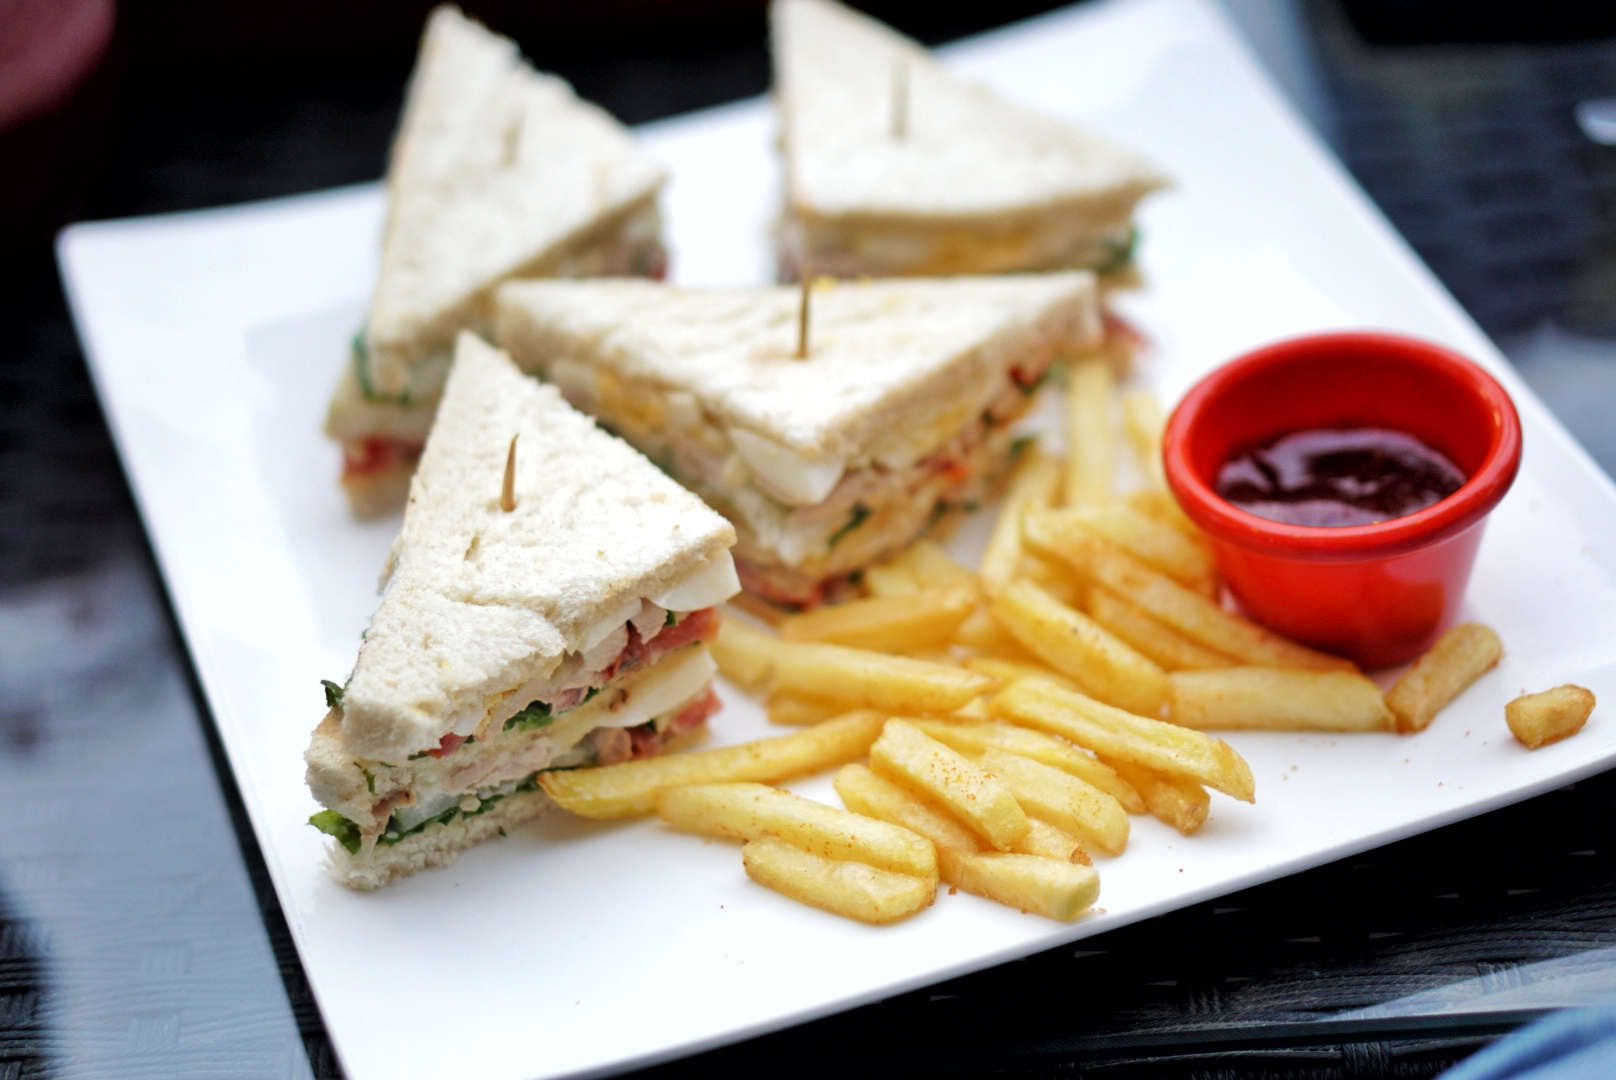 Club sandwich and fries at samantha's bistro